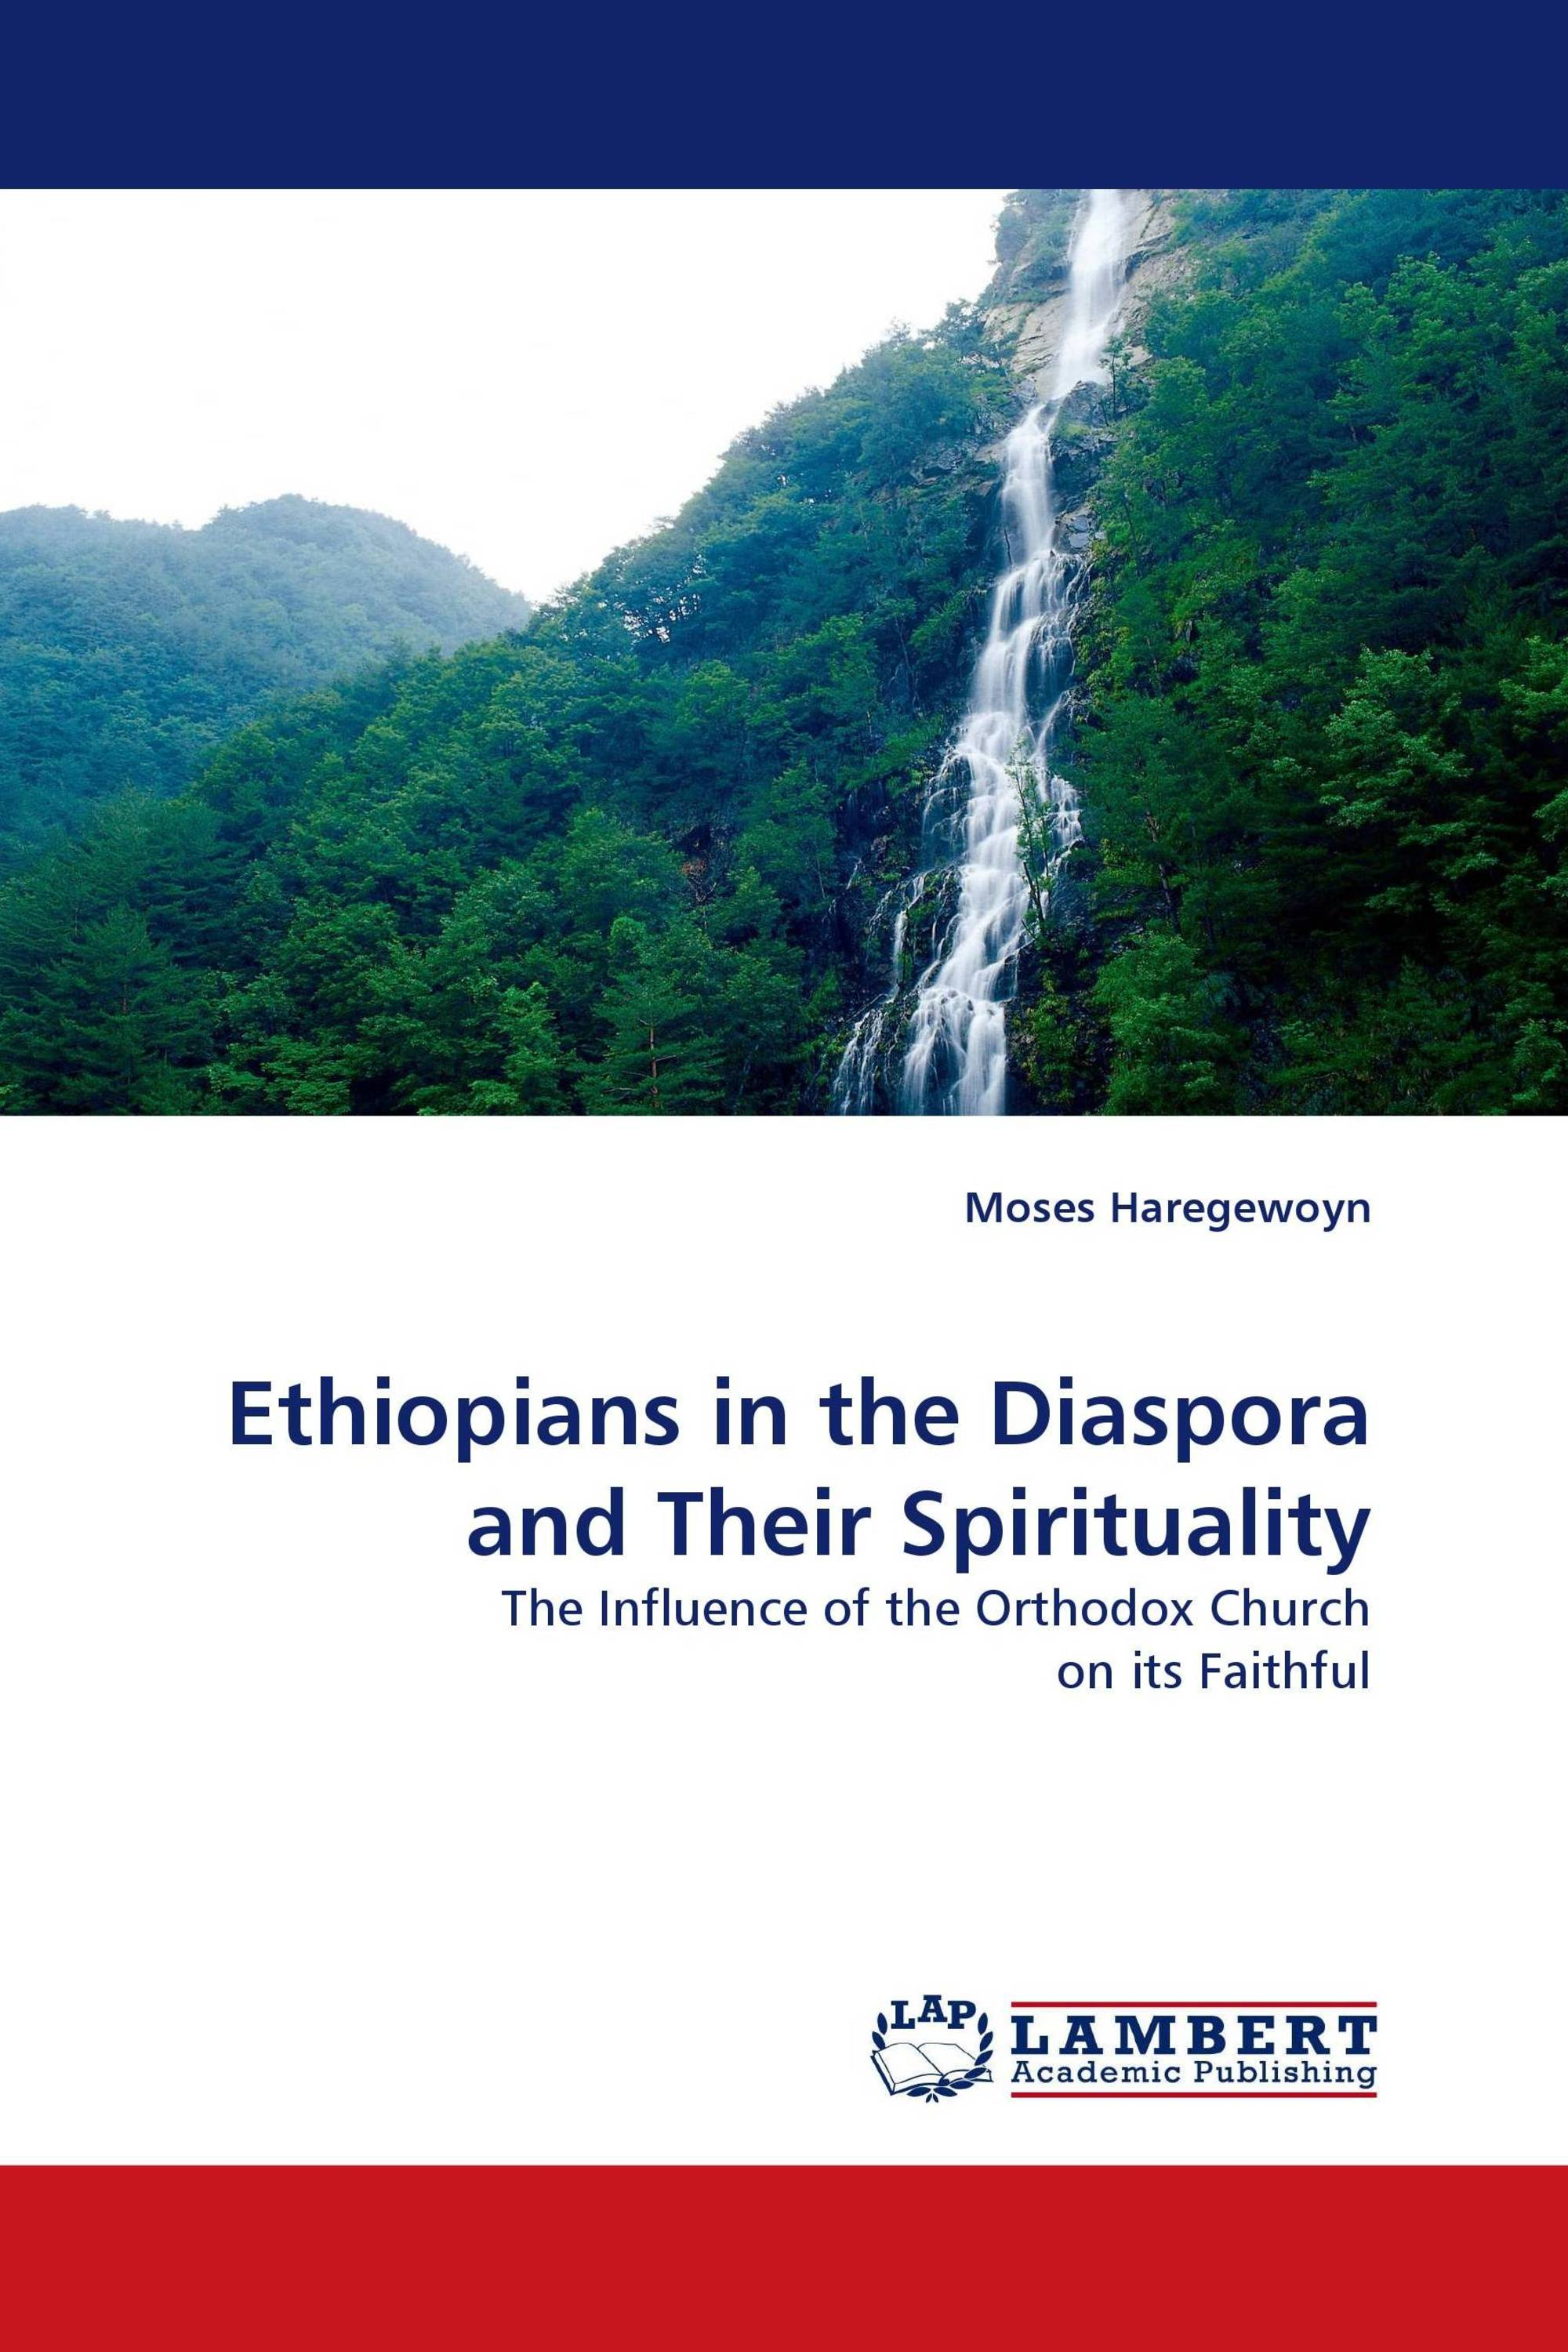 Ethiopians in the Diaspora and Their Spirituality